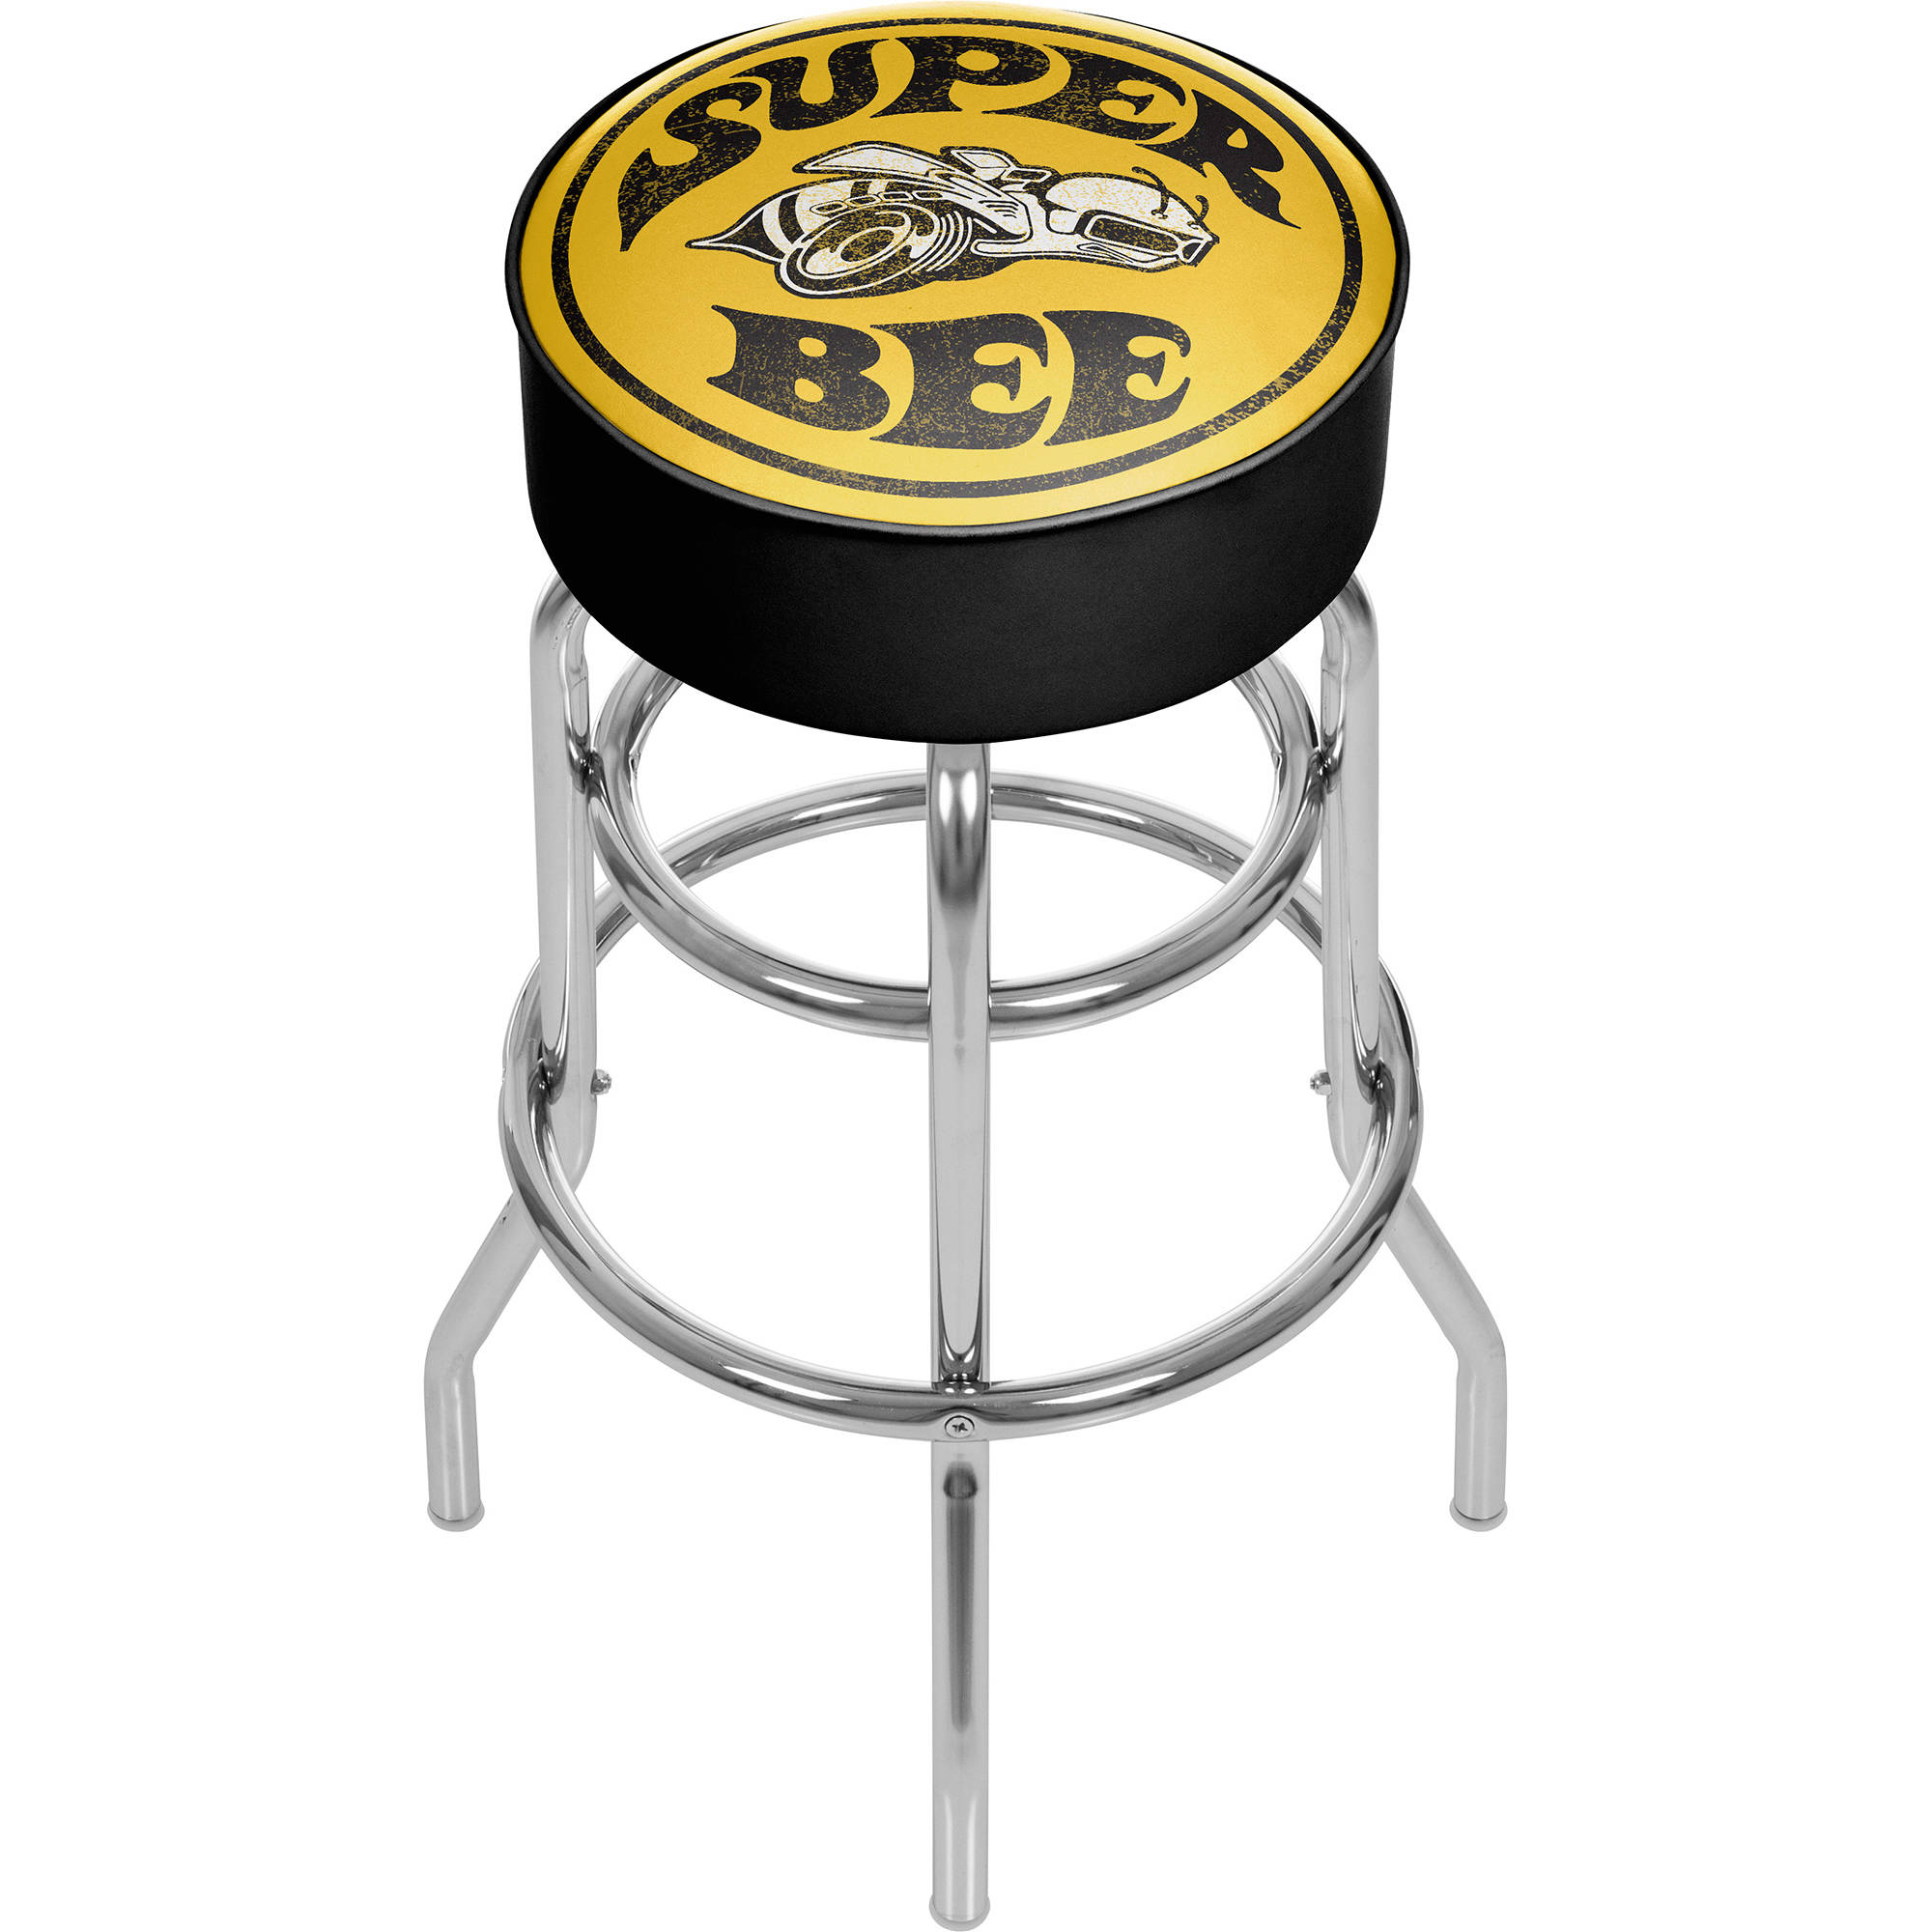 Dodge Padded Swivel Bar Stool, Super Bee